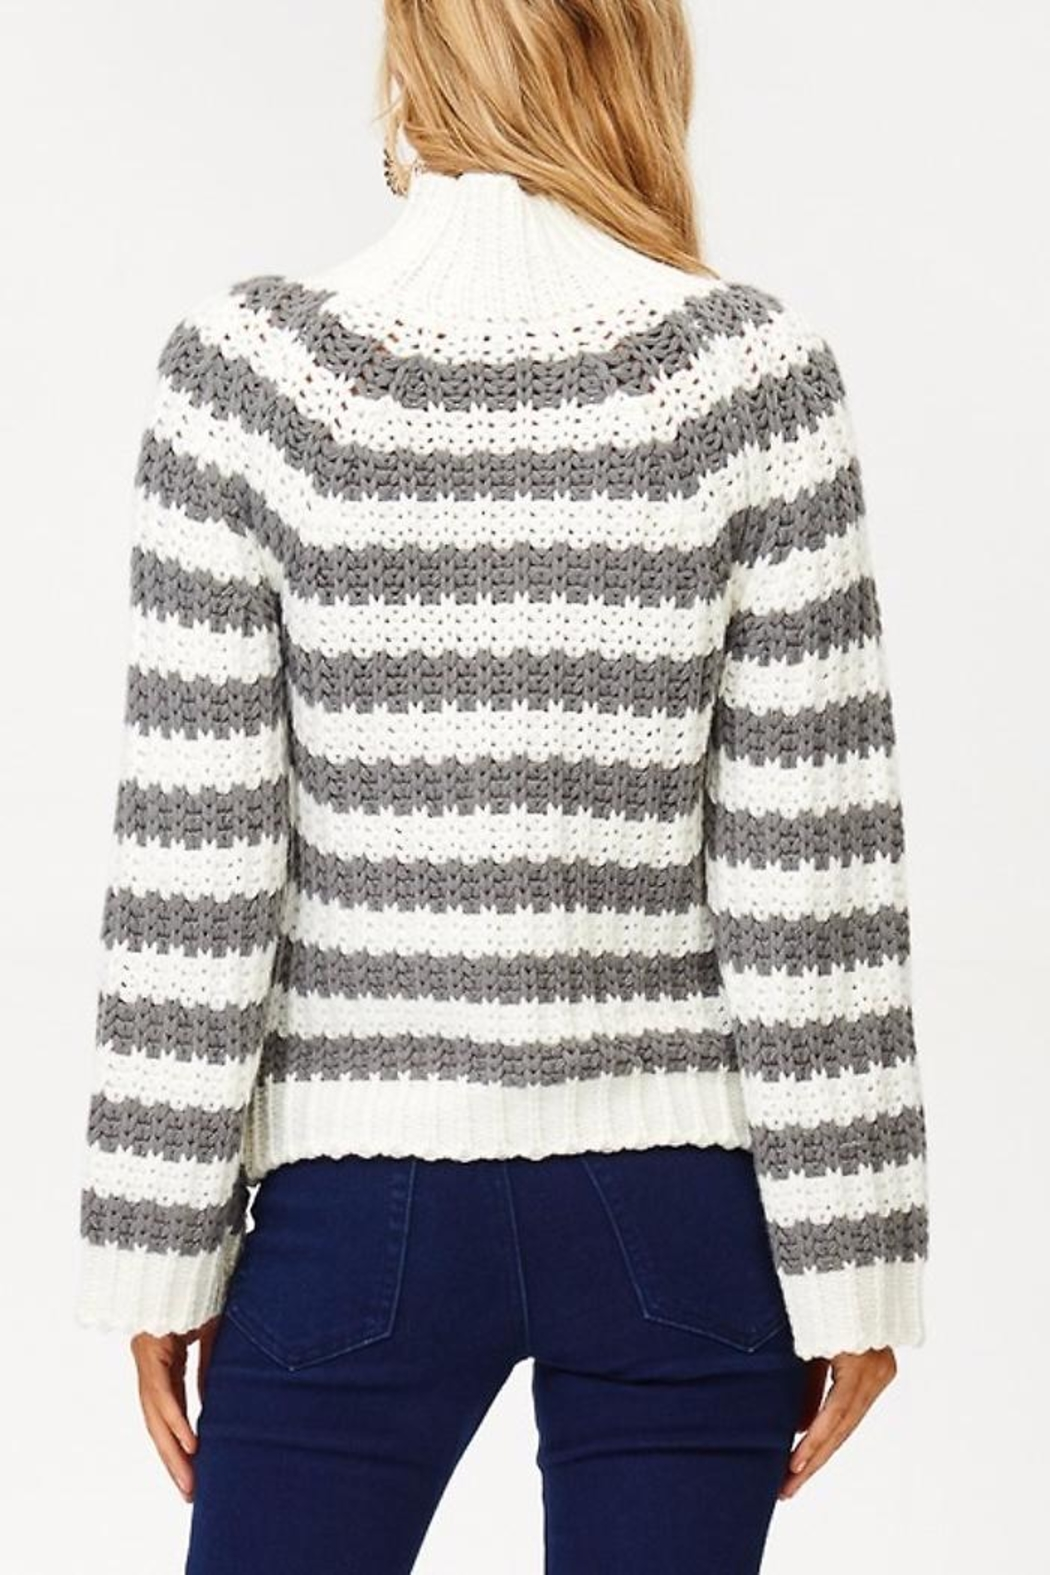 People Outfitter Wild Cat Sweater - Side Cropped Image